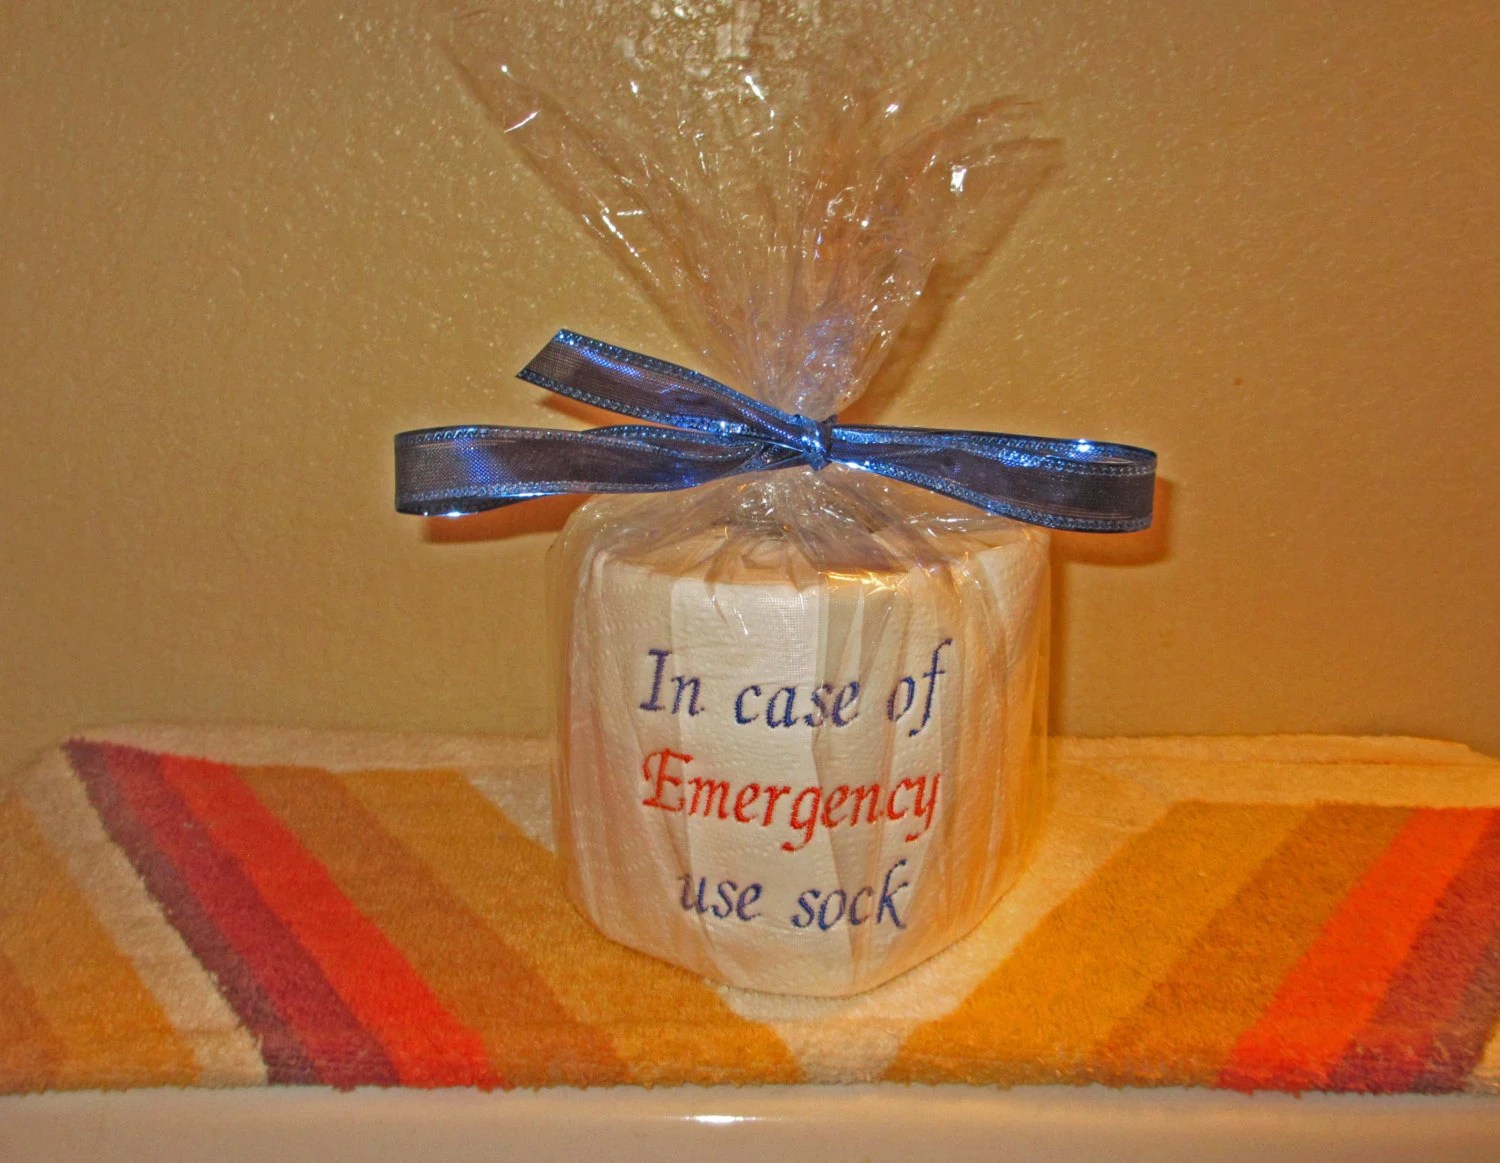 Custom Made Toilet Paper Custom Embroidered Toilet Paper In Case Of Emergency Use Sock